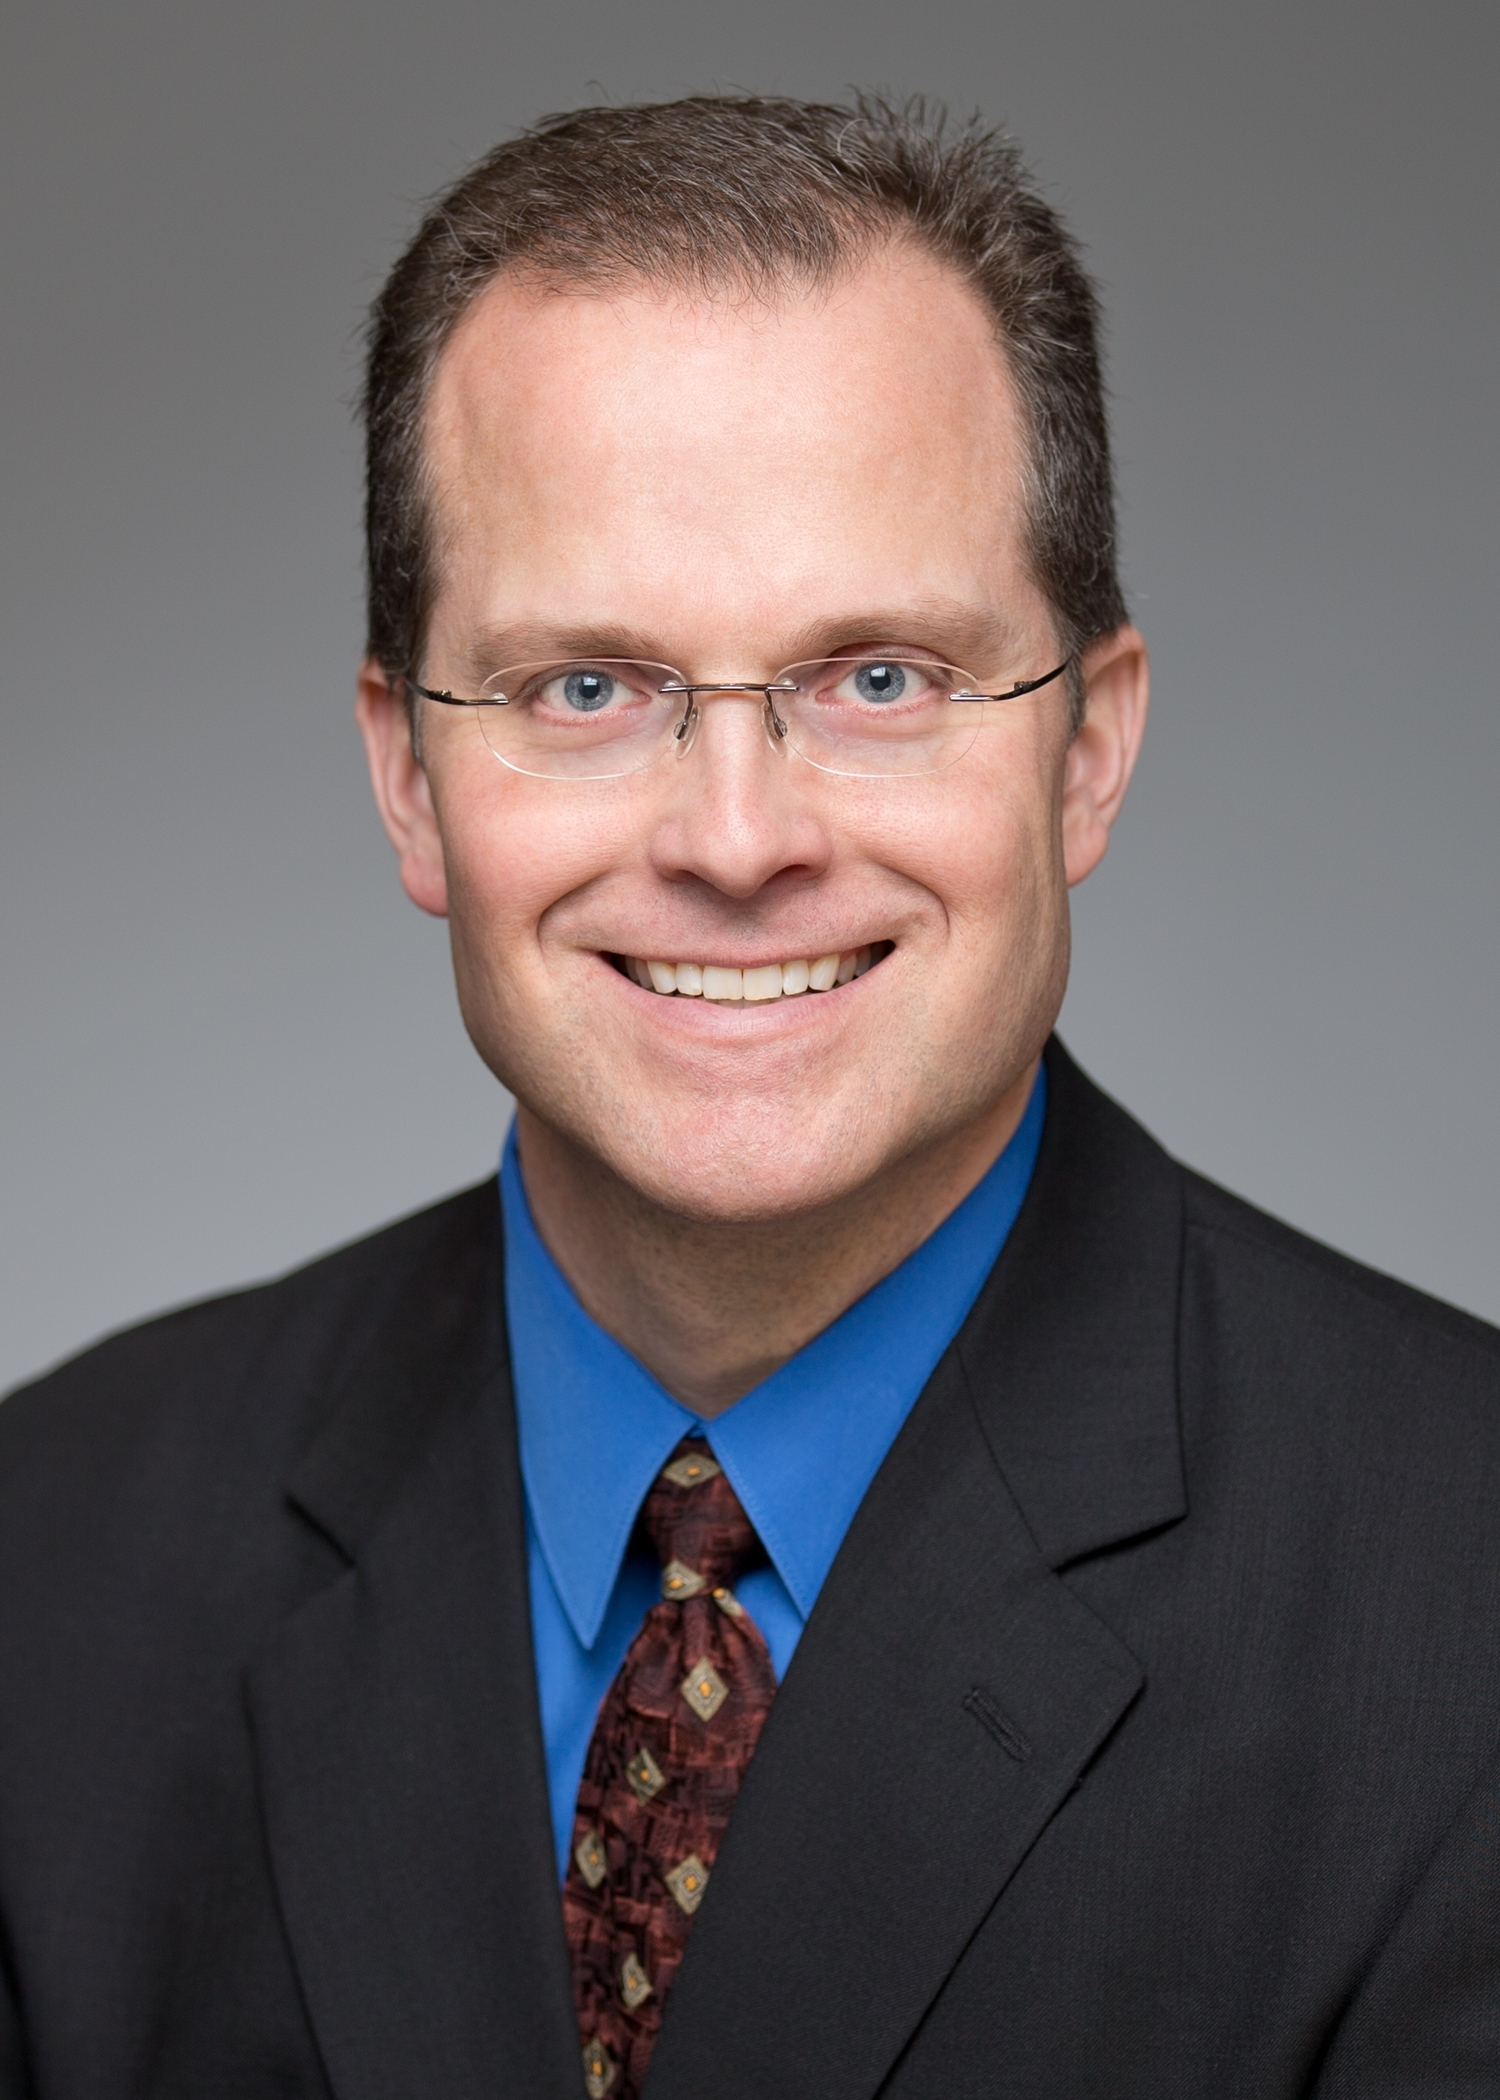 Brian Holman, assistant vice president of Absence Management, Short Term Disability and Contact Centers at The Standard (Photo: Business Wire)